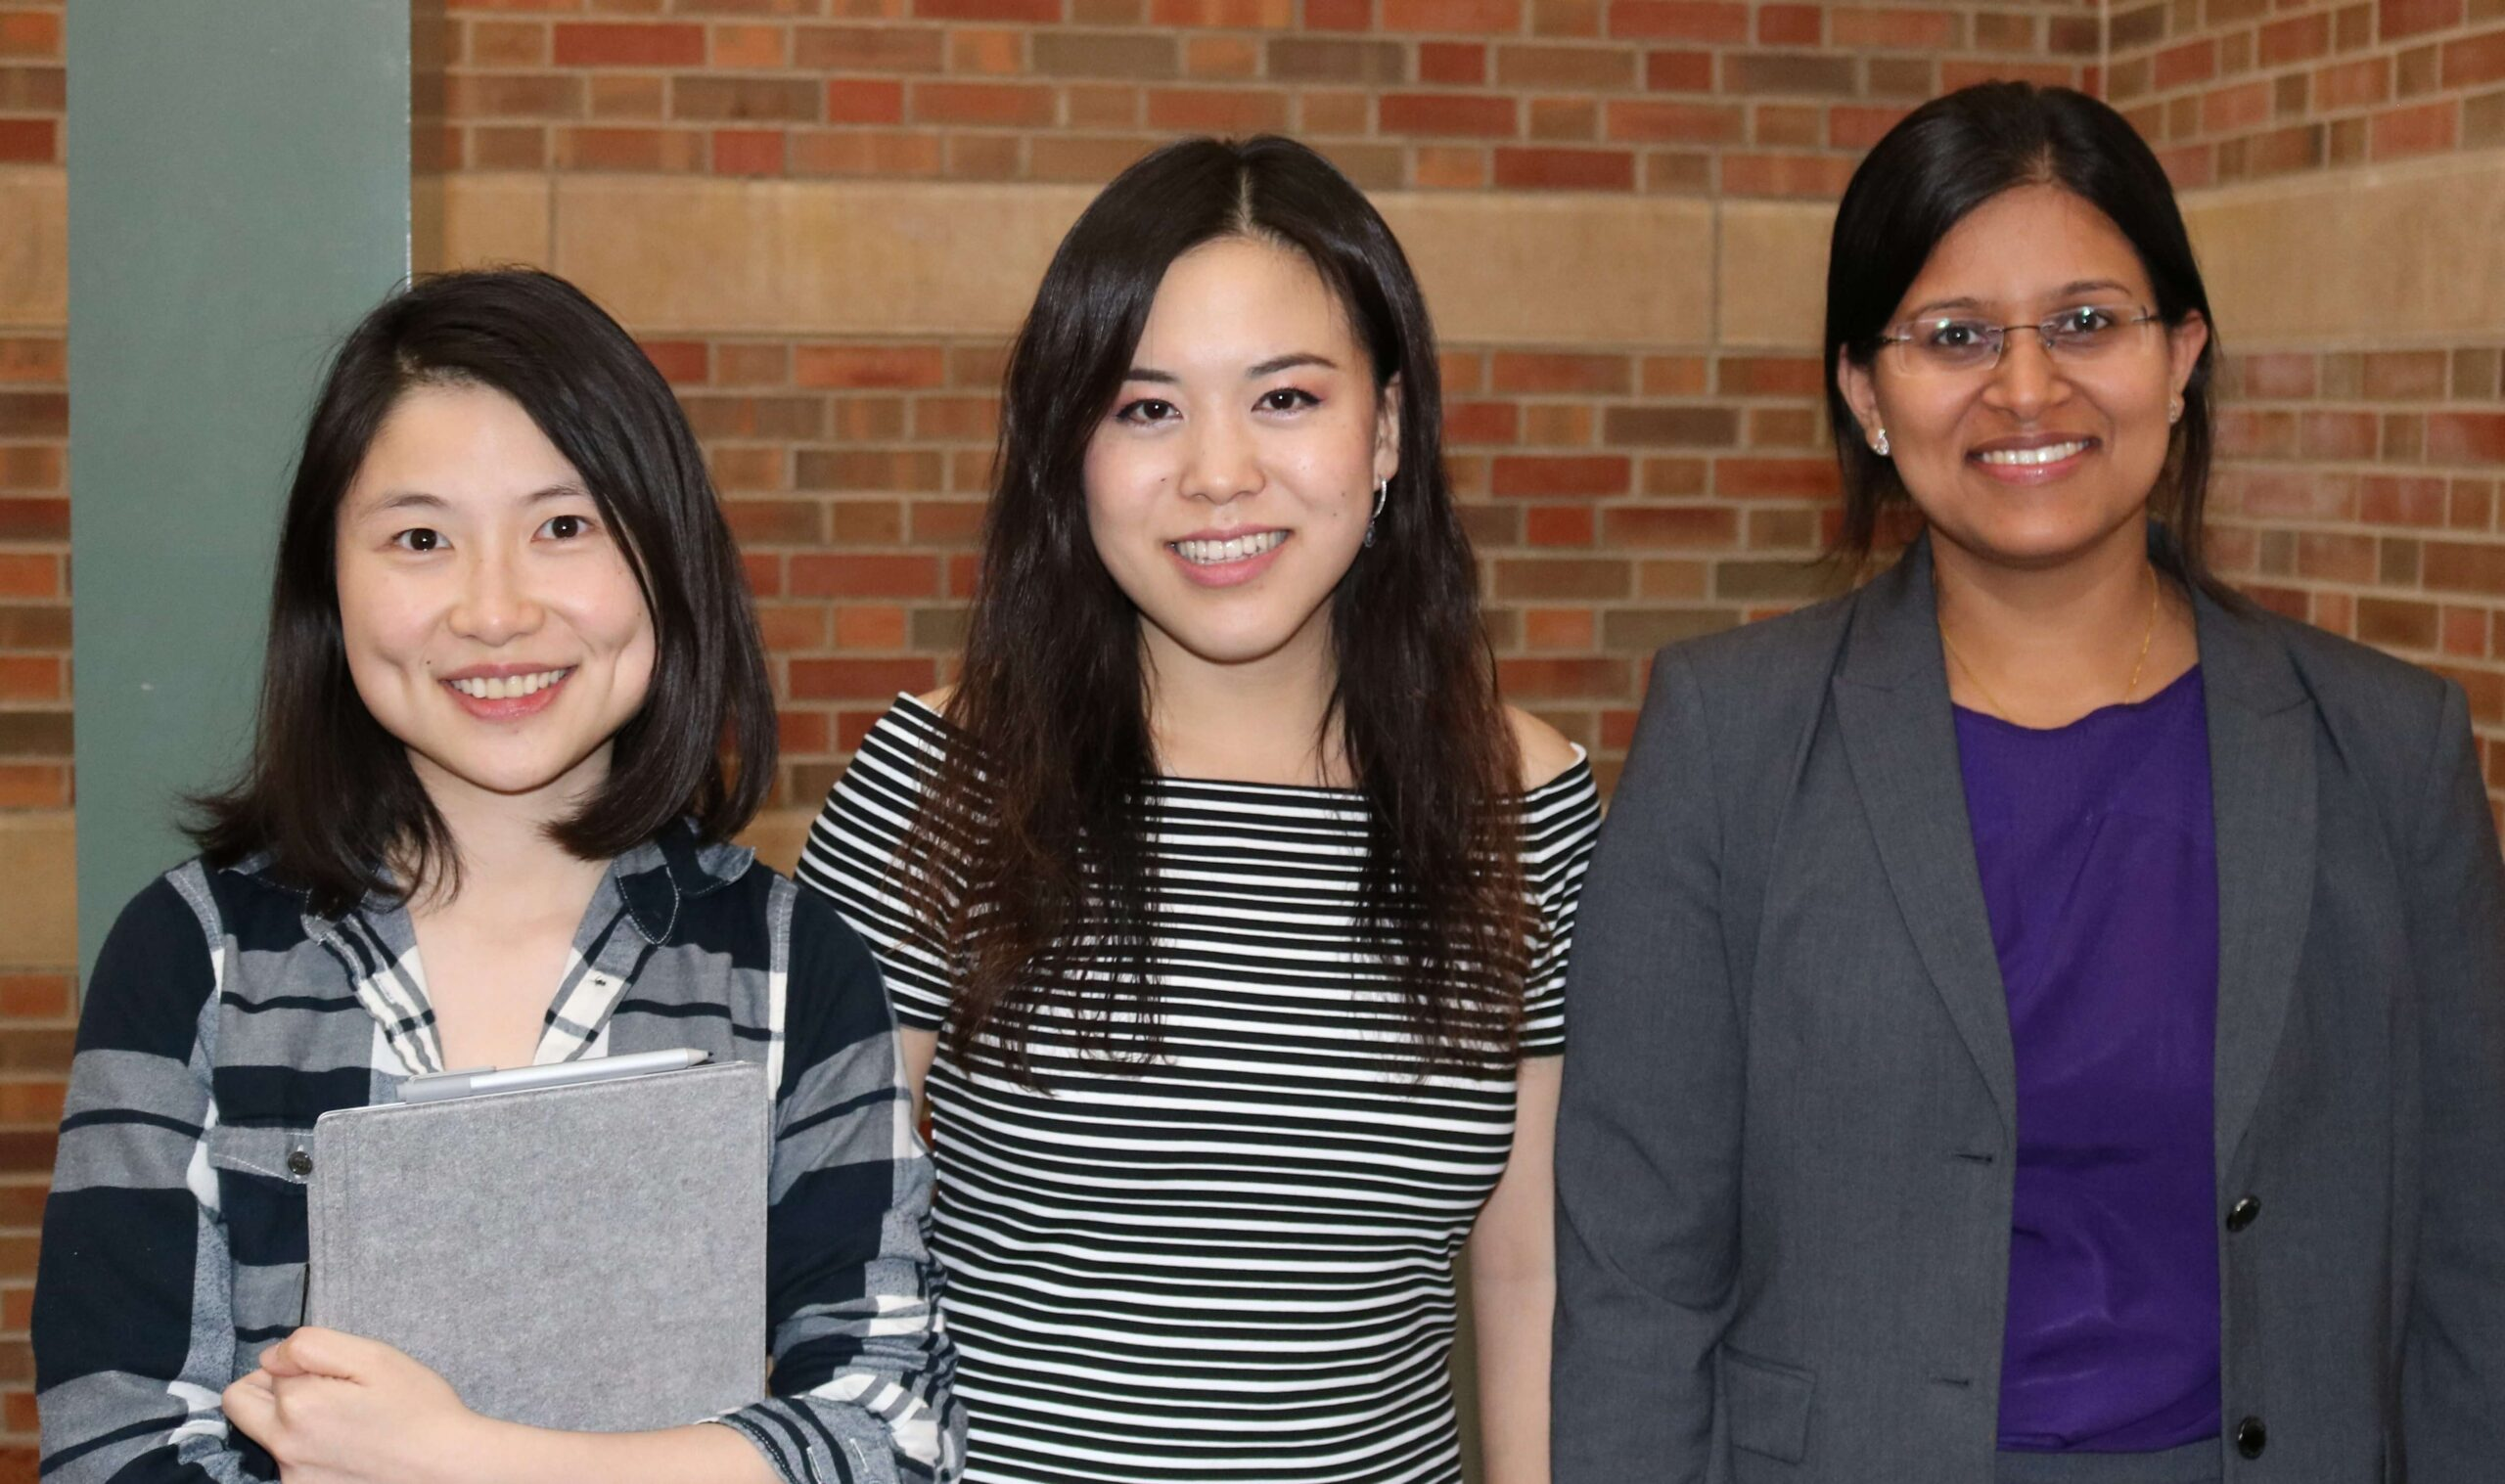 TiMe Competition Winners, Sixian You, Shachi Mittal, and Joanna Li